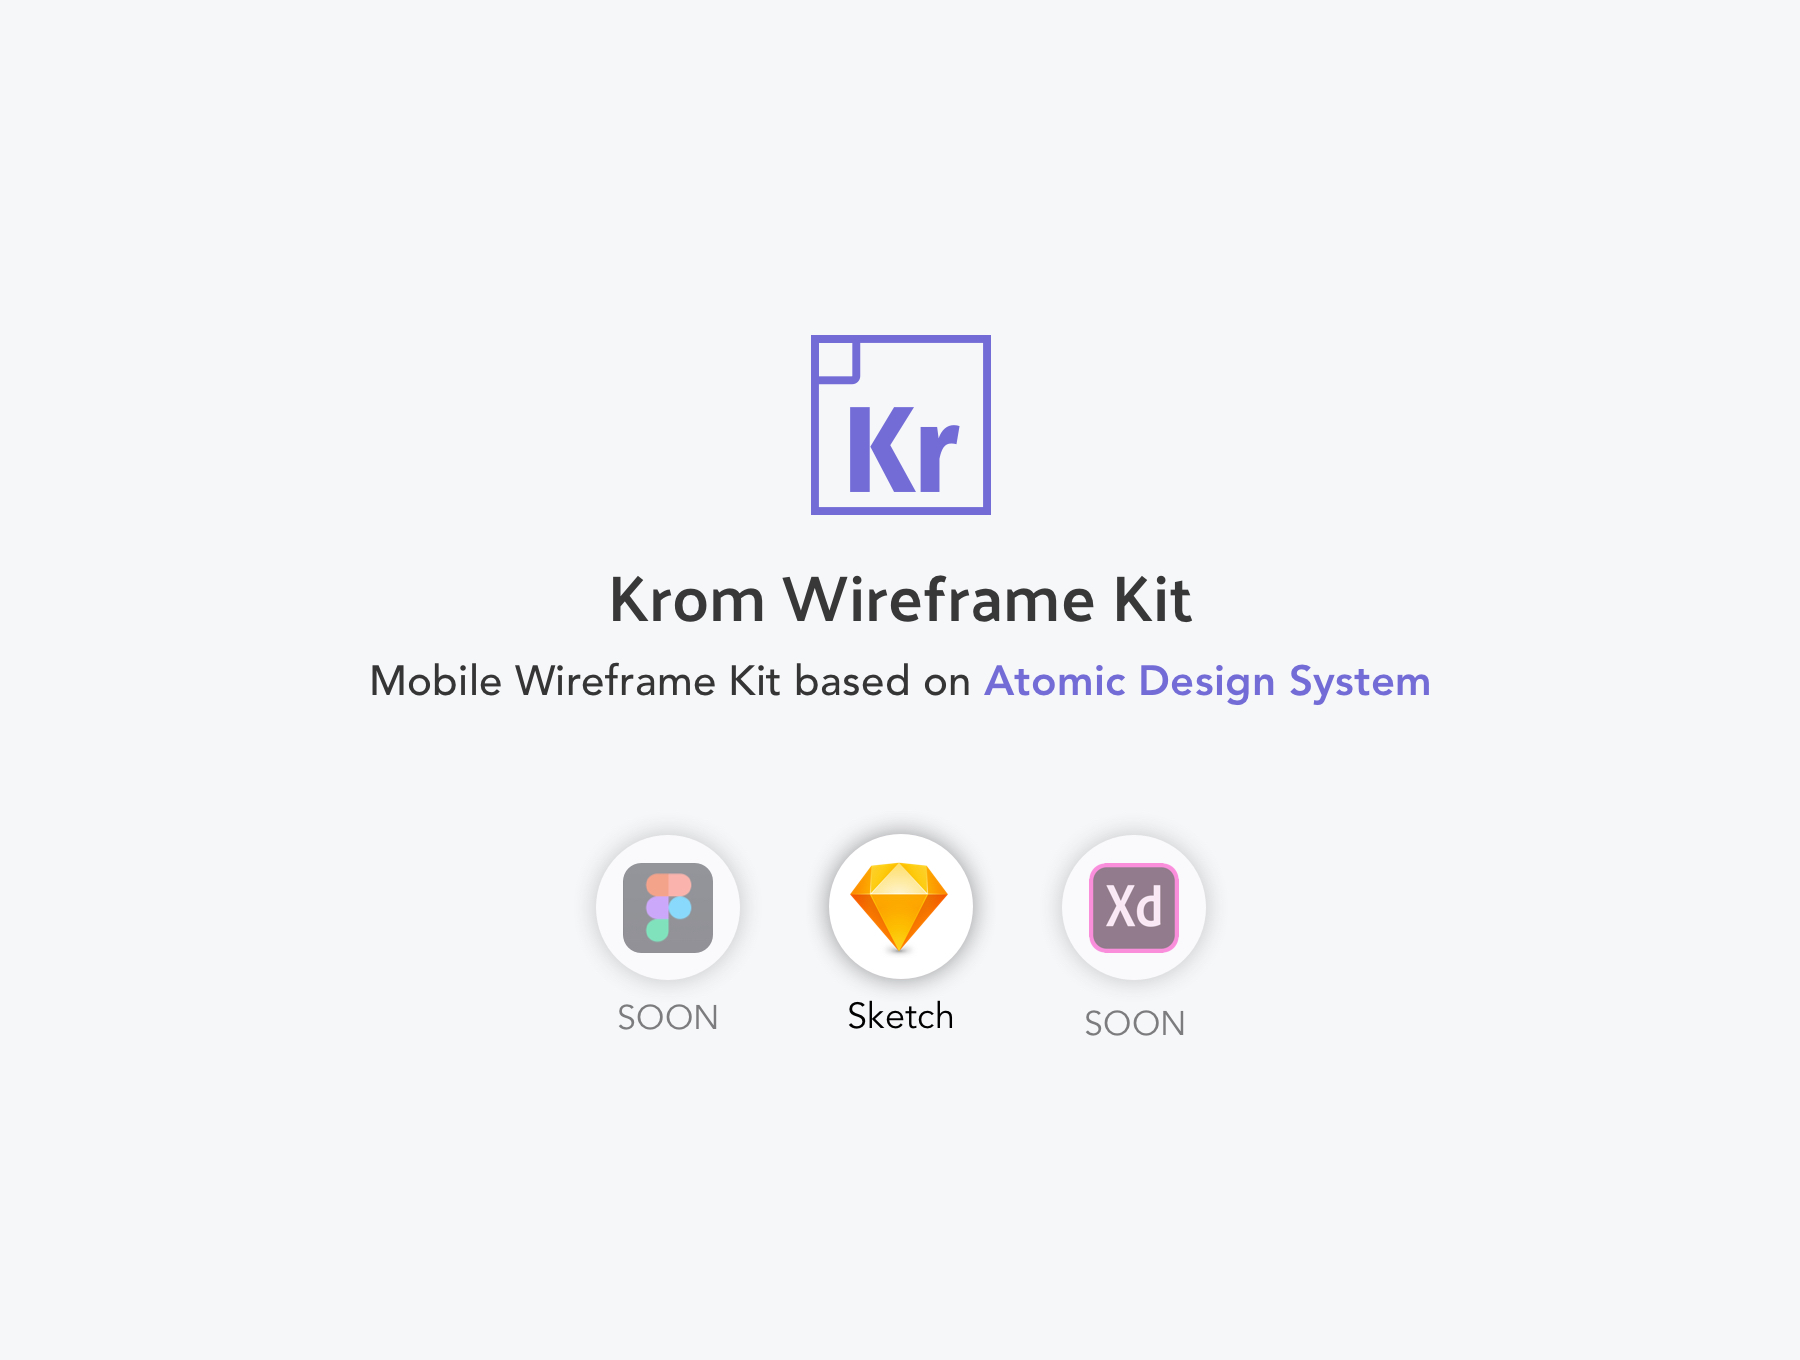 移动端线框图APP UI KIT套装模板下载 [Sketch] Krom Mobile Wireframe Kit